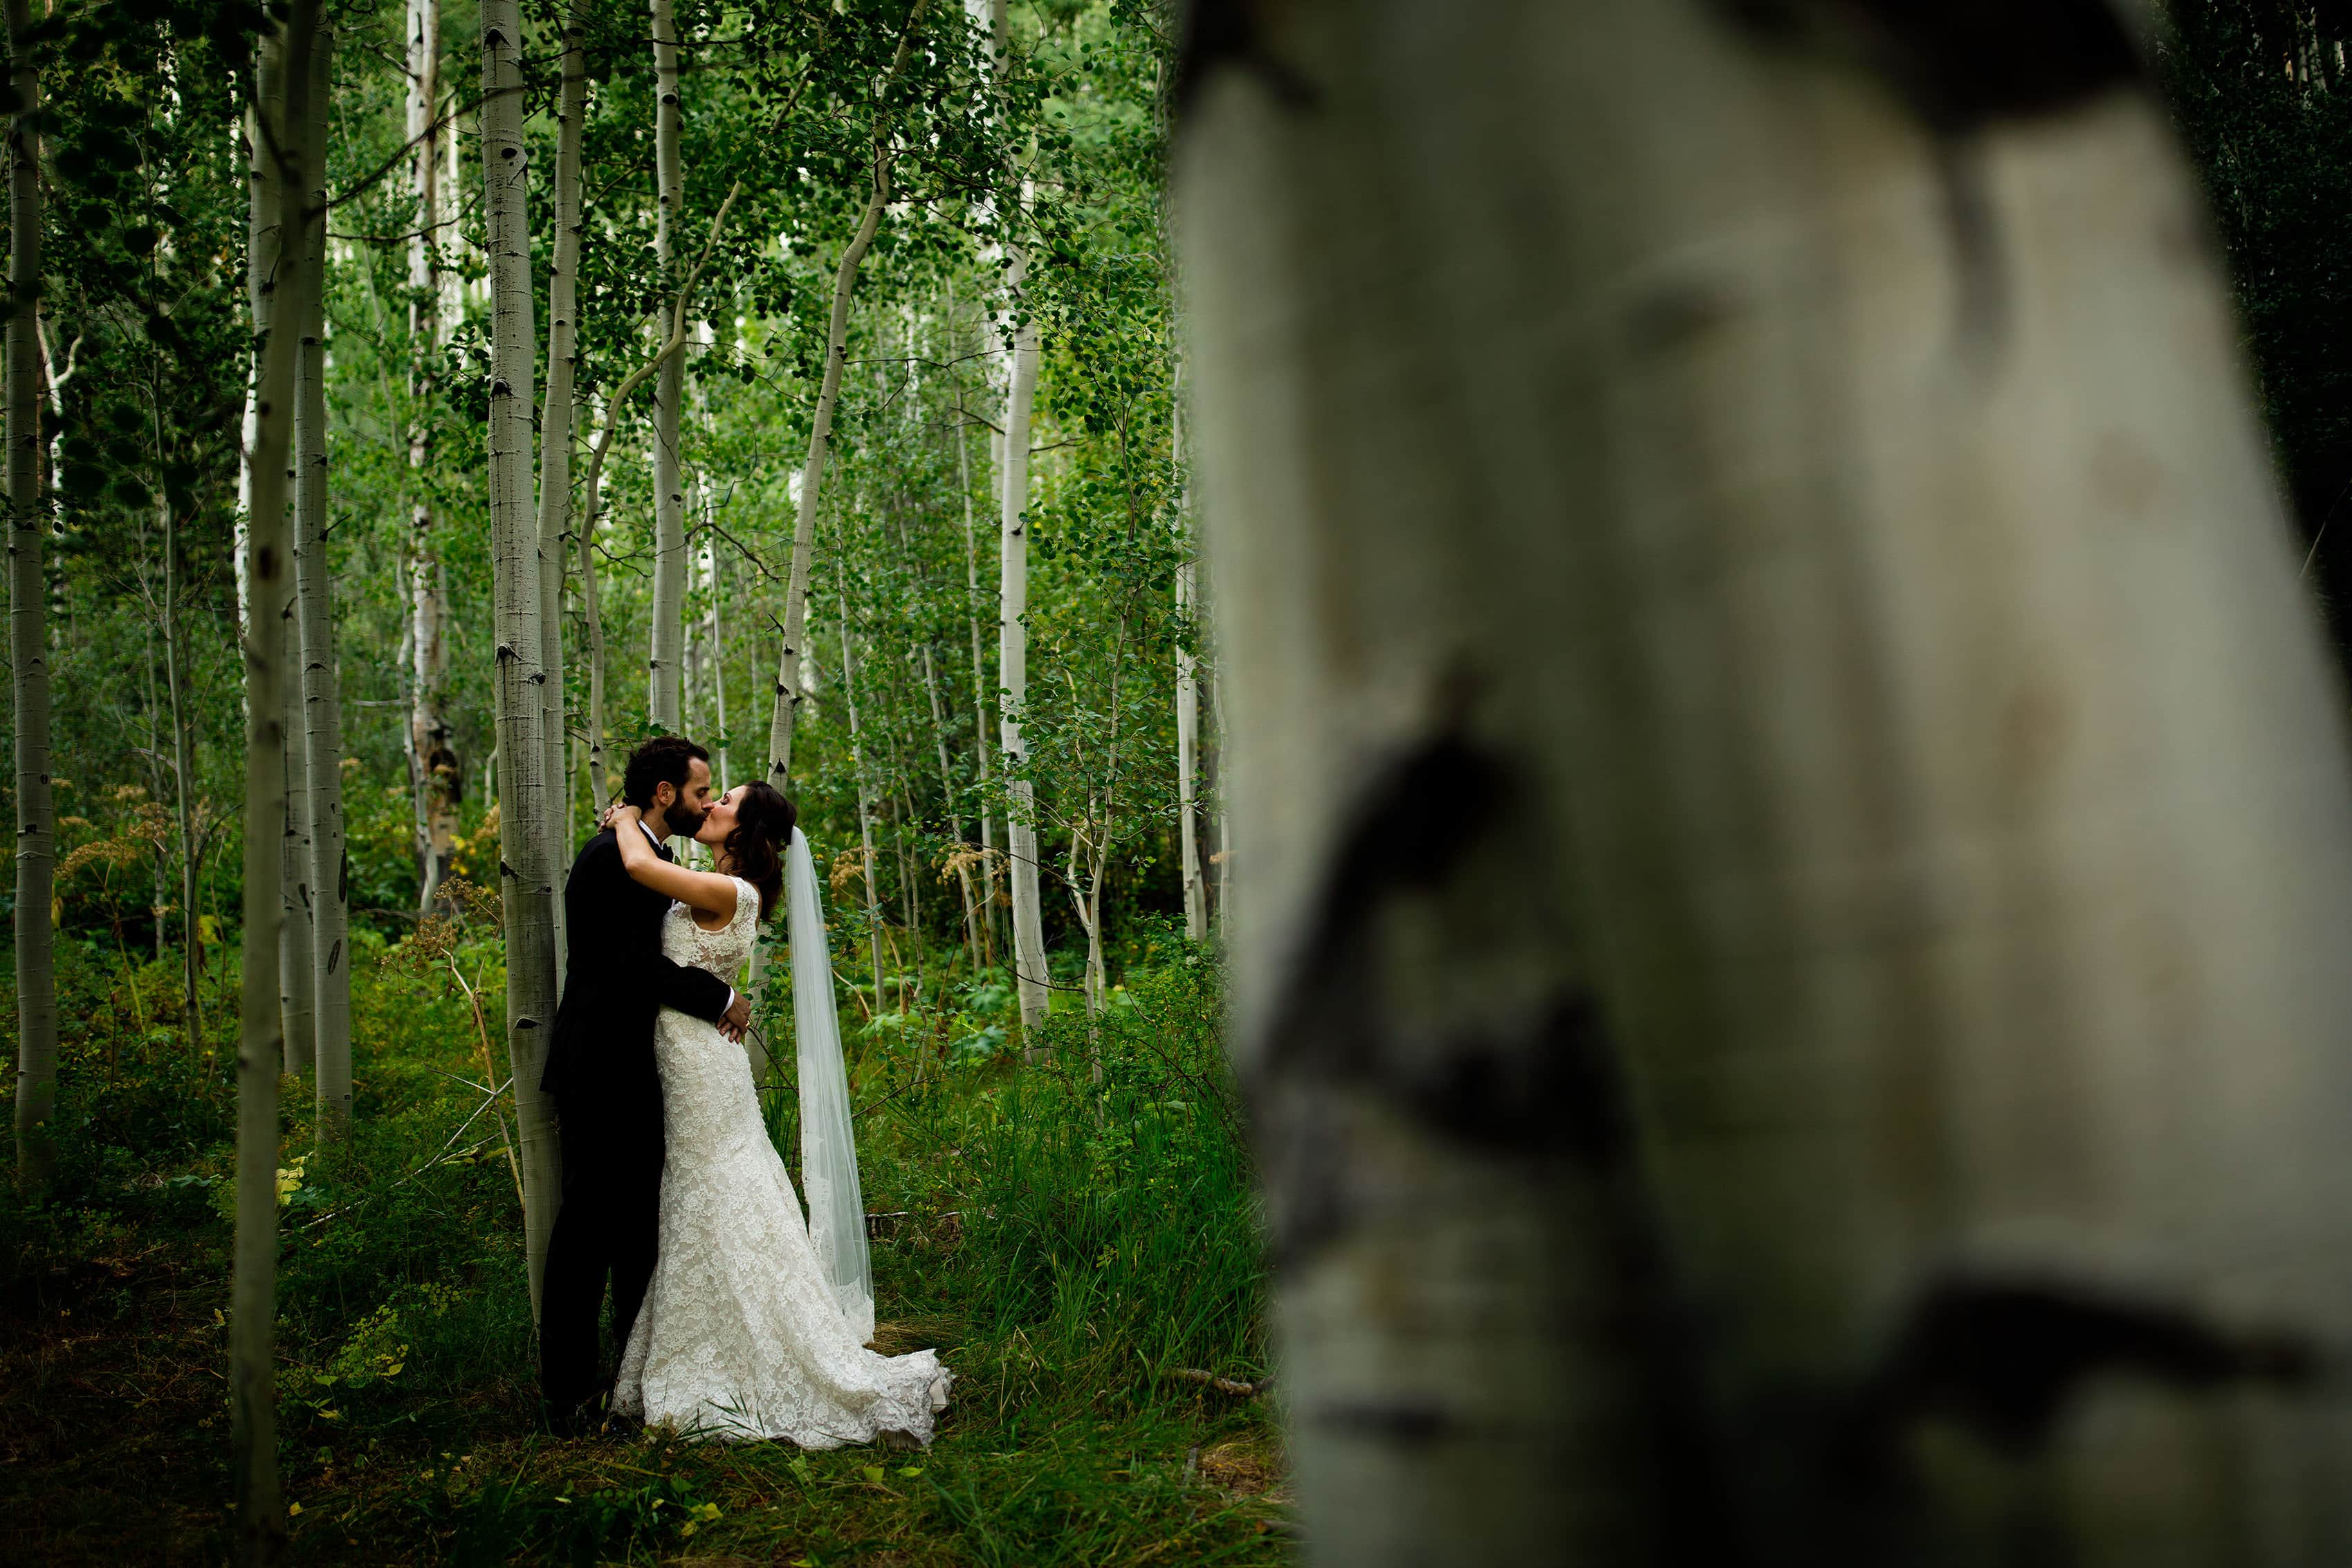 The couple share a kiss after their wedding in Vail